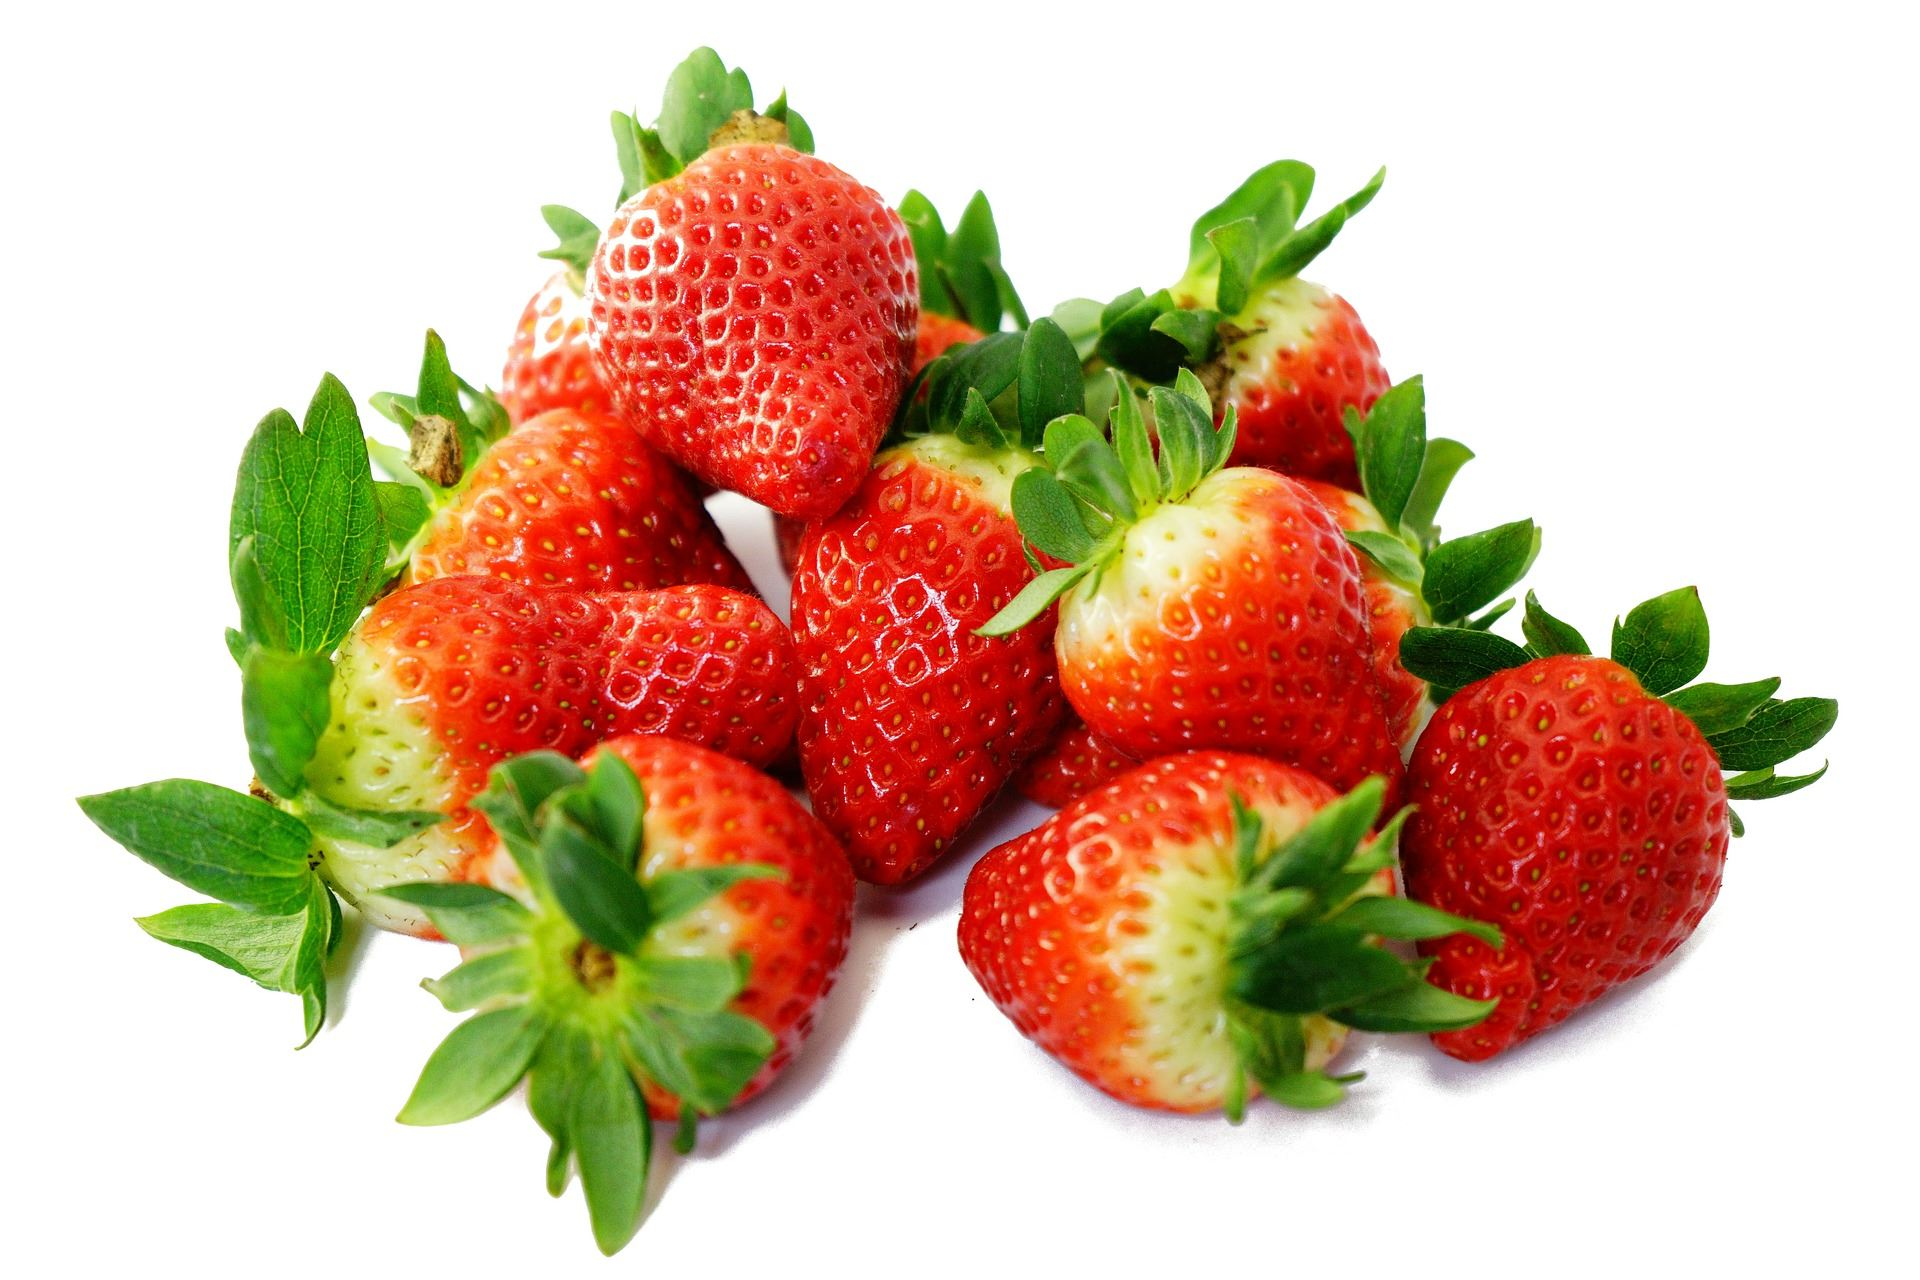 A pile of green and red strawberries